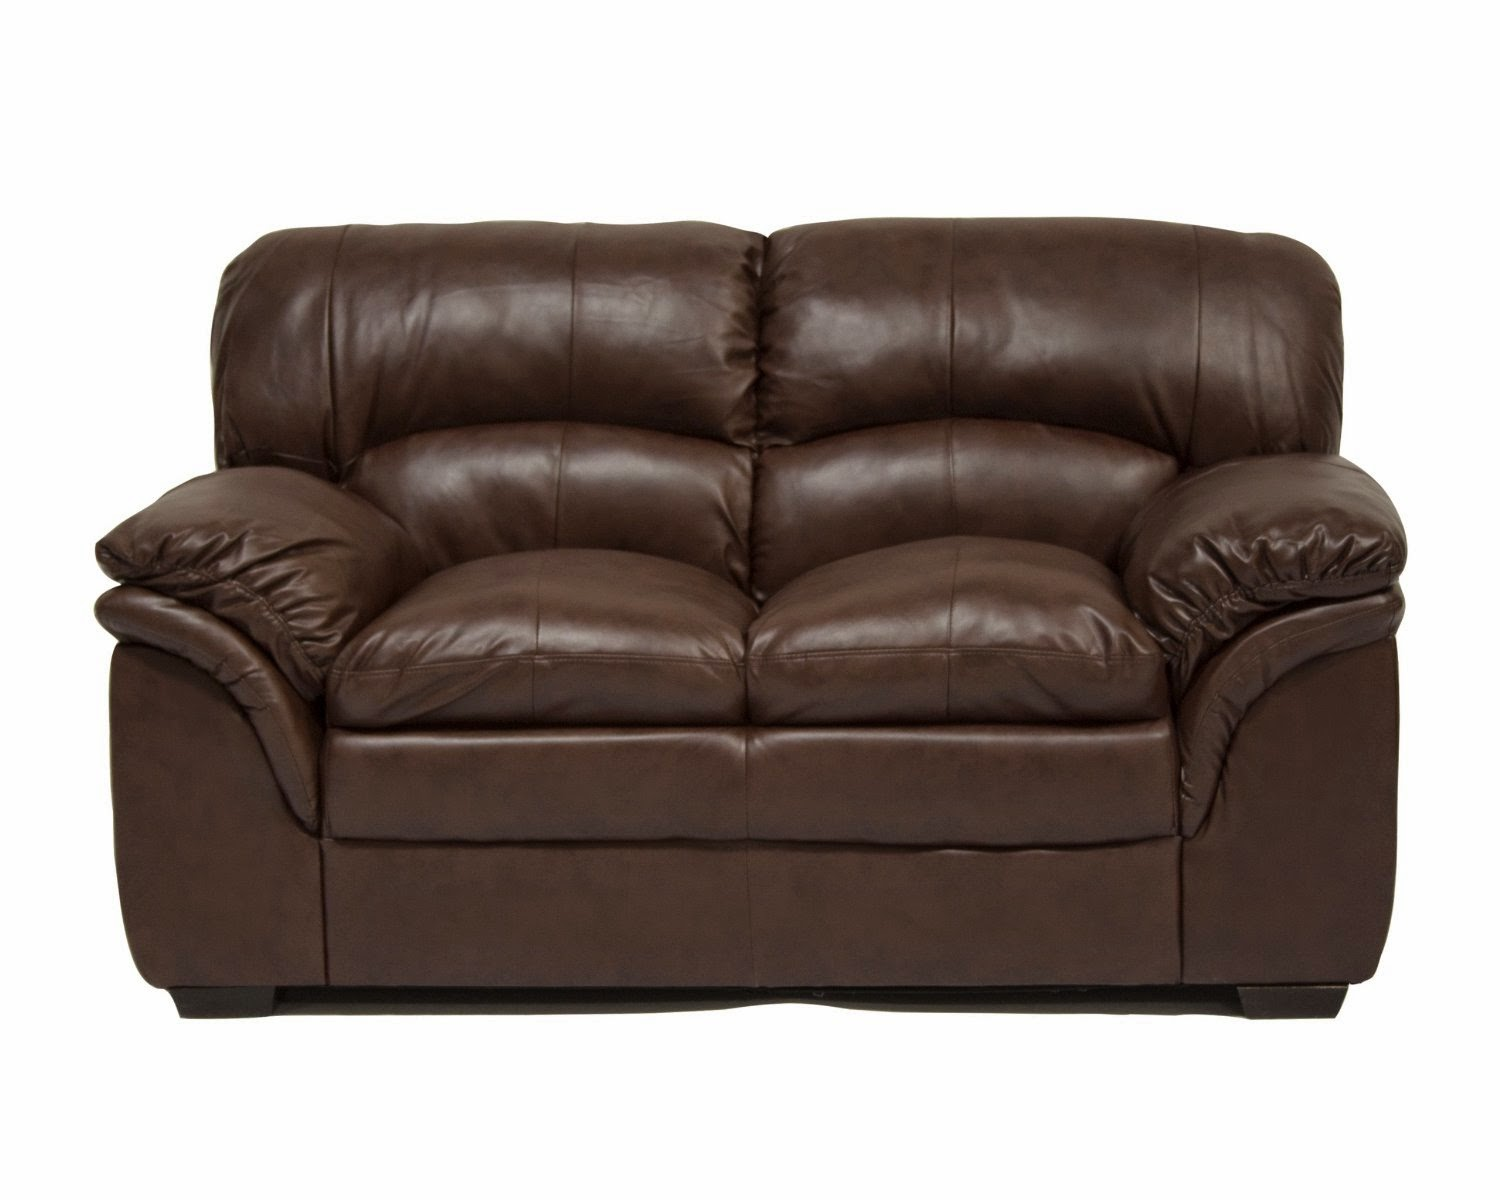 You can go sleek and modern with a dark. The Best Reclining Sofas Ratings Reviews: 2 Seater Leather ...